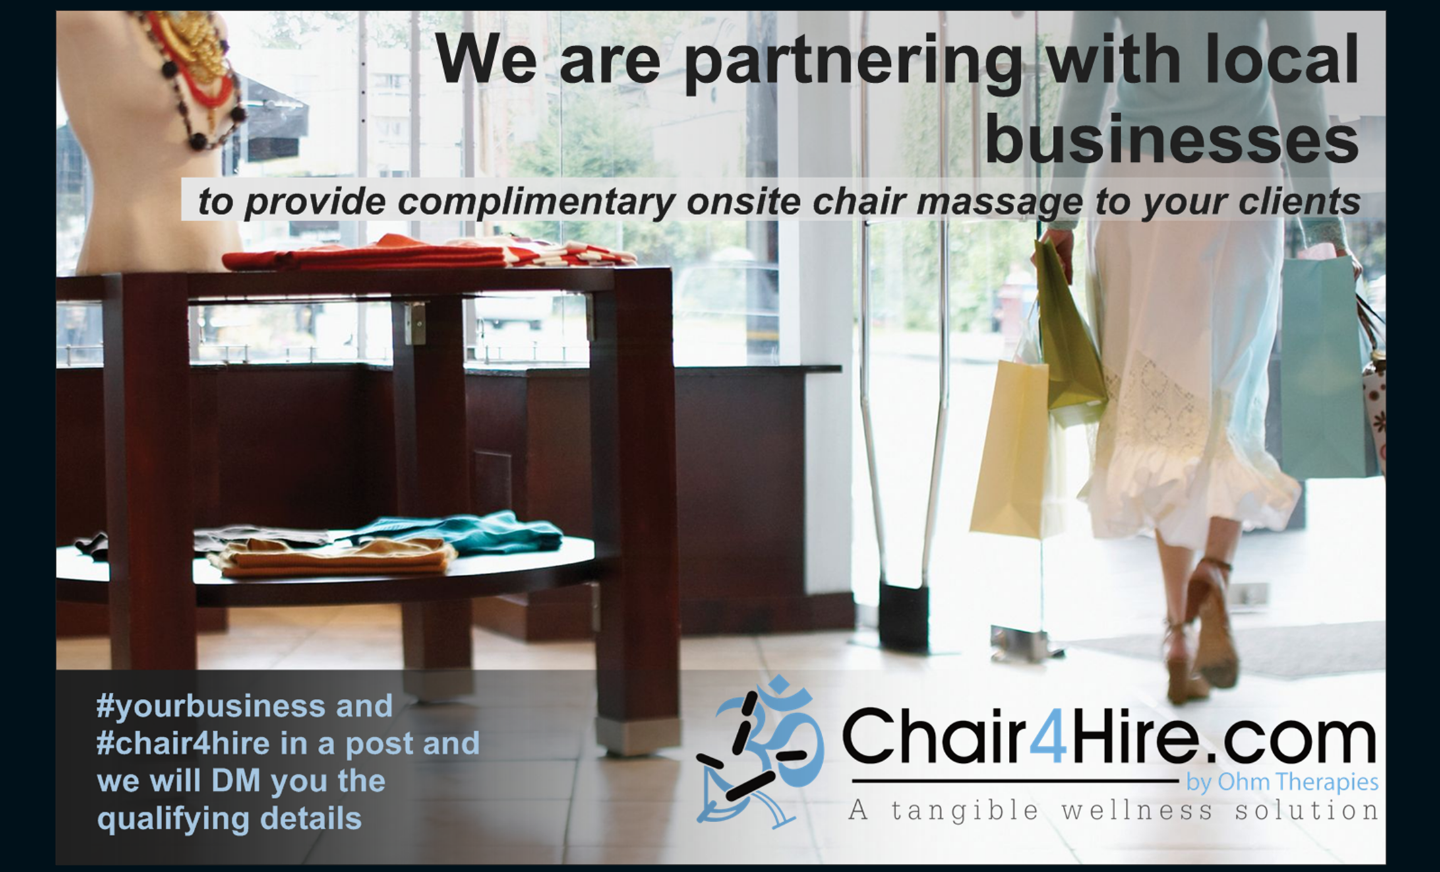 Chair4Hire partnering with local businesses